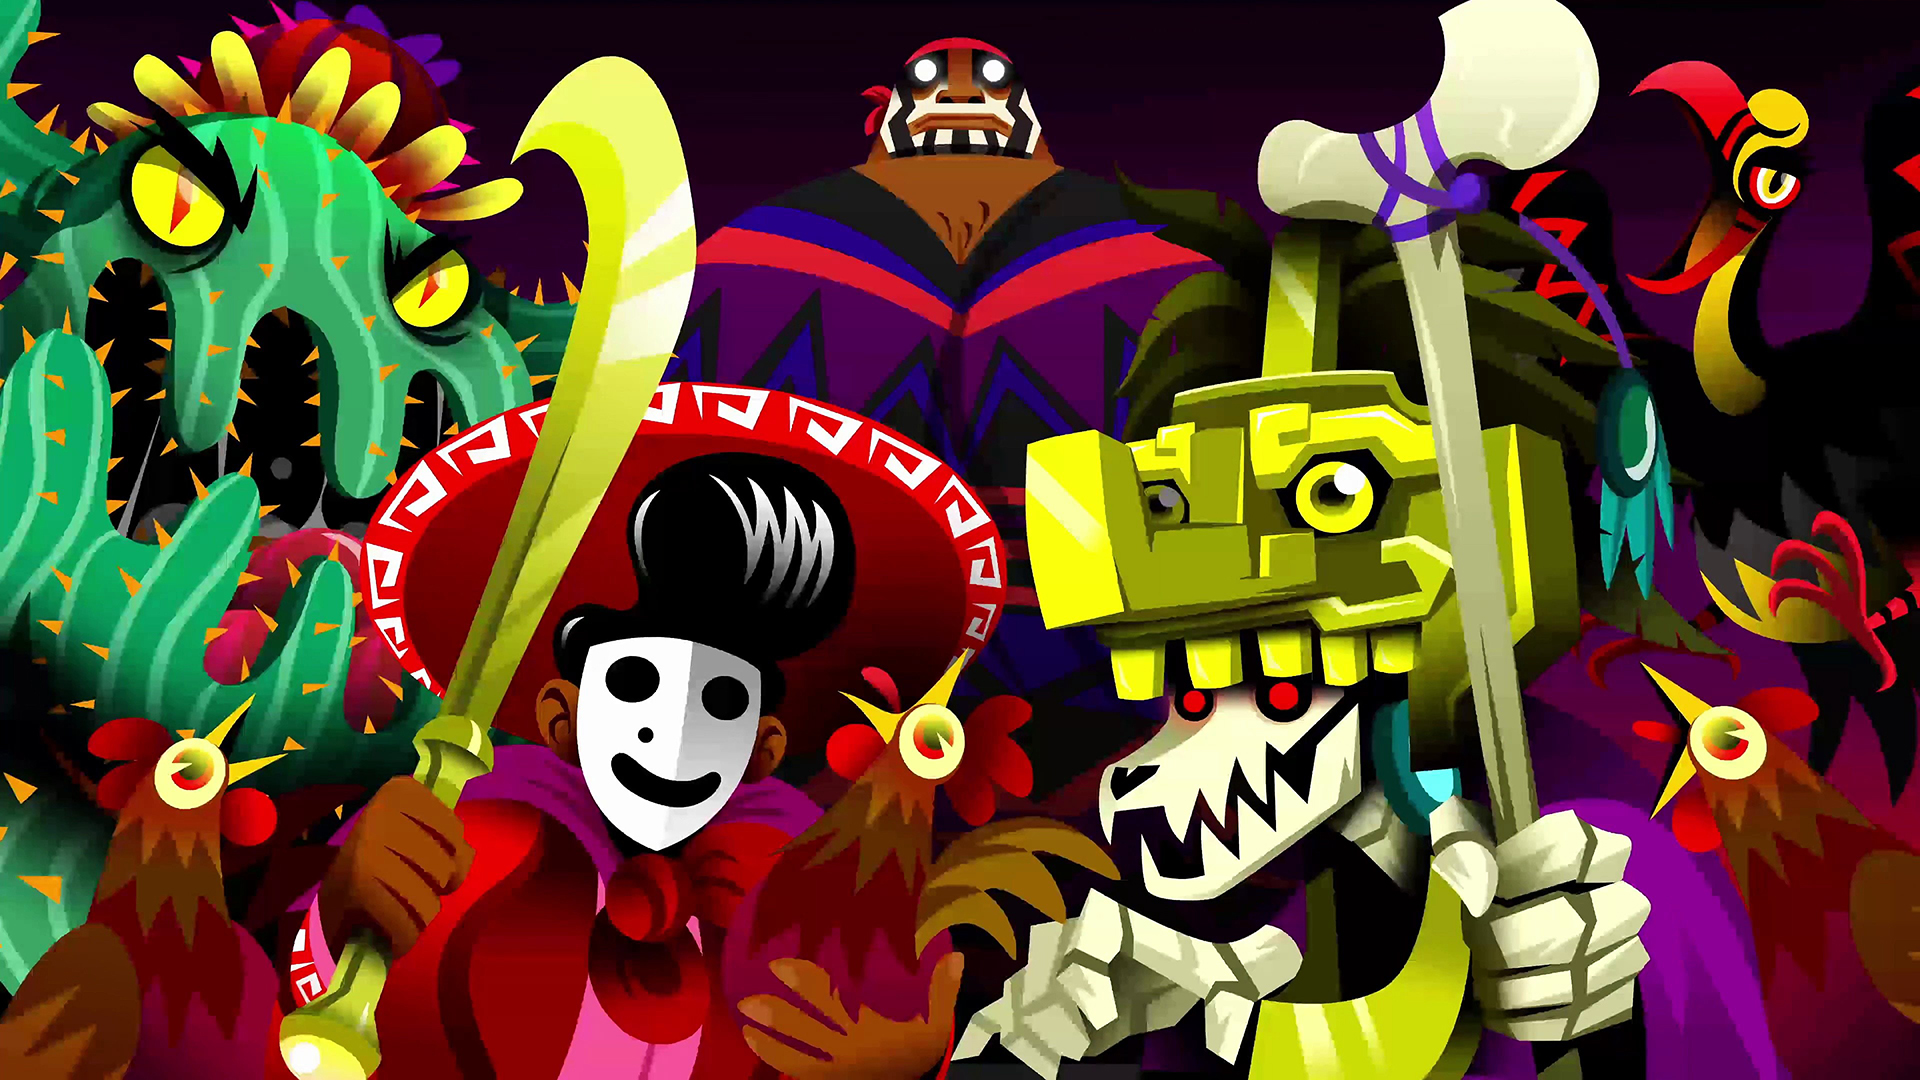 Guacamelee 2 Laptop Background 1920x1080